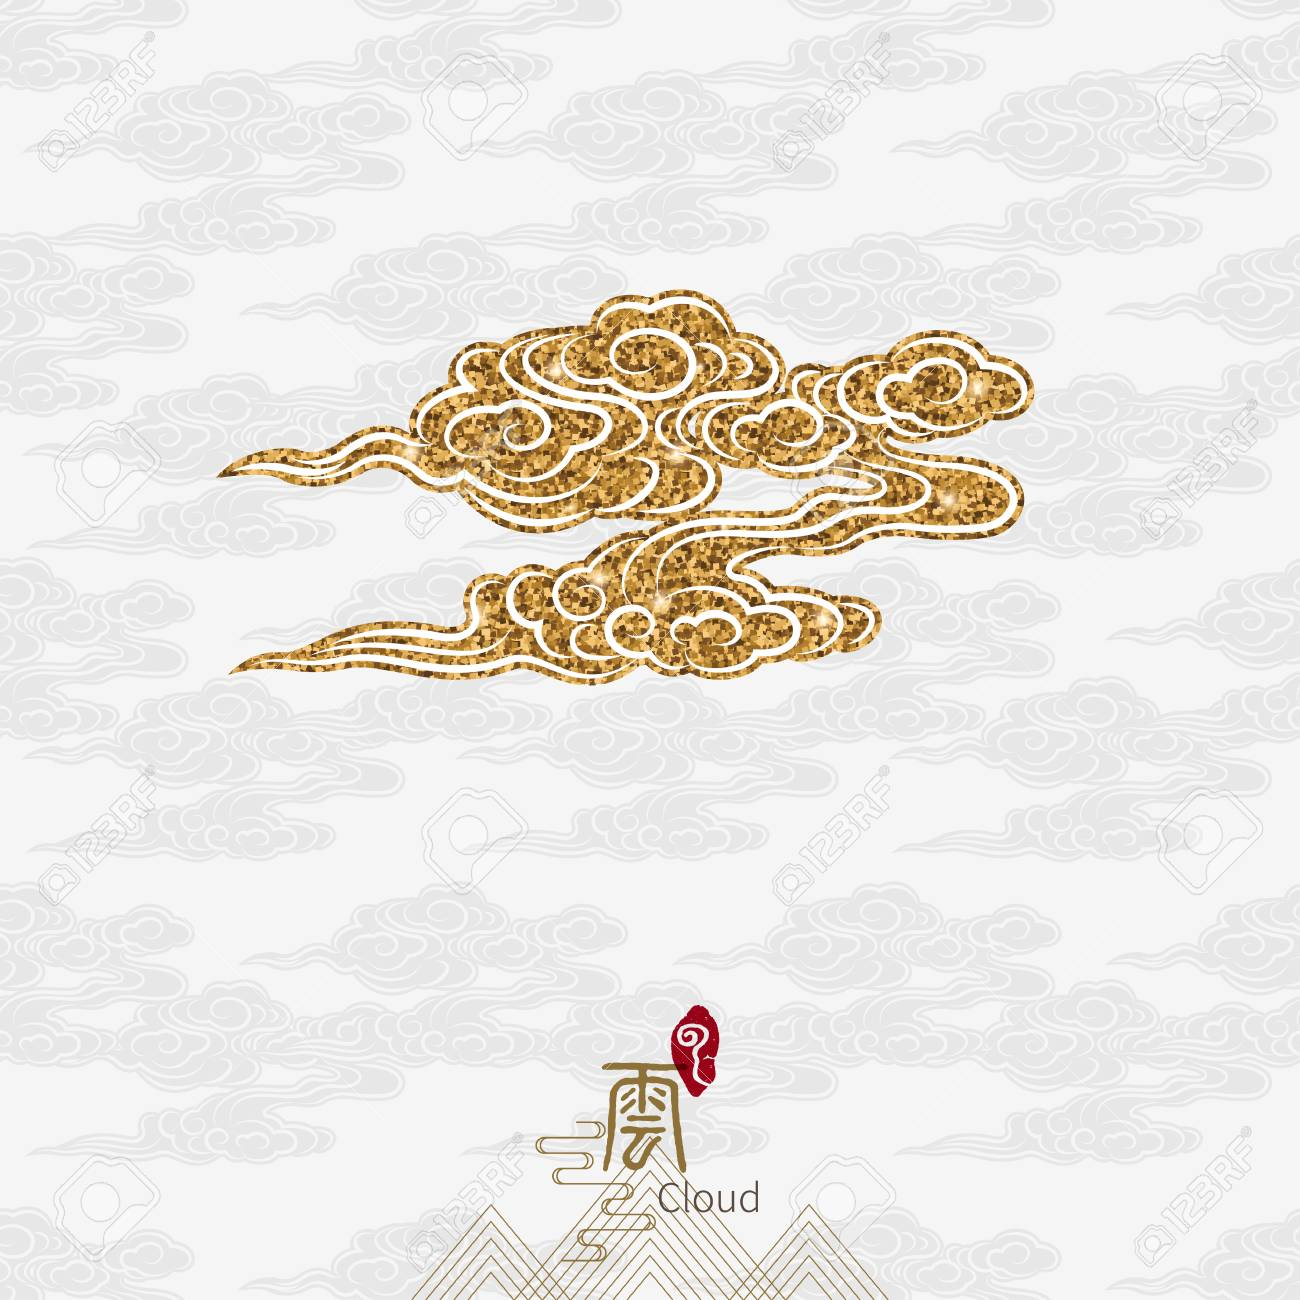 Vector: Chinese cloud traditional seamless pattern background, Chinese word meaning: Cloud. - 53824841